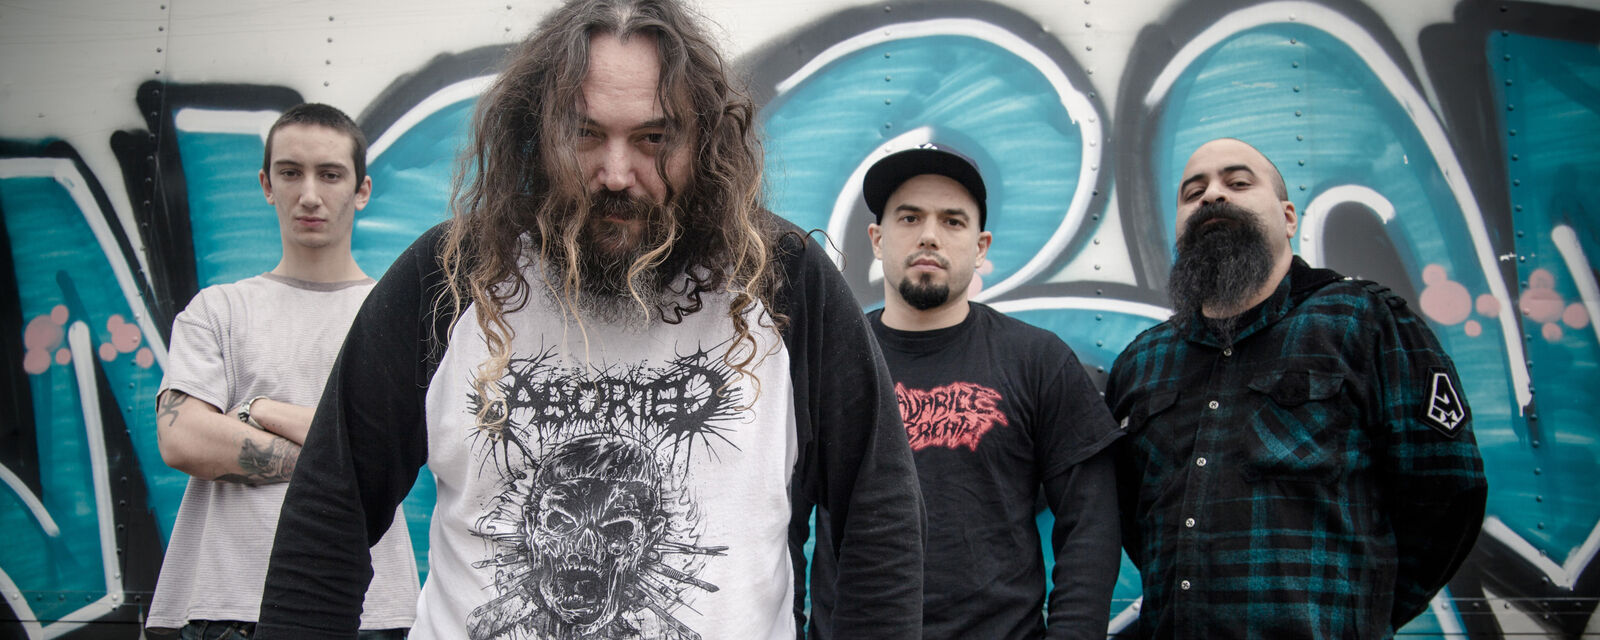 Soulfly and Nile